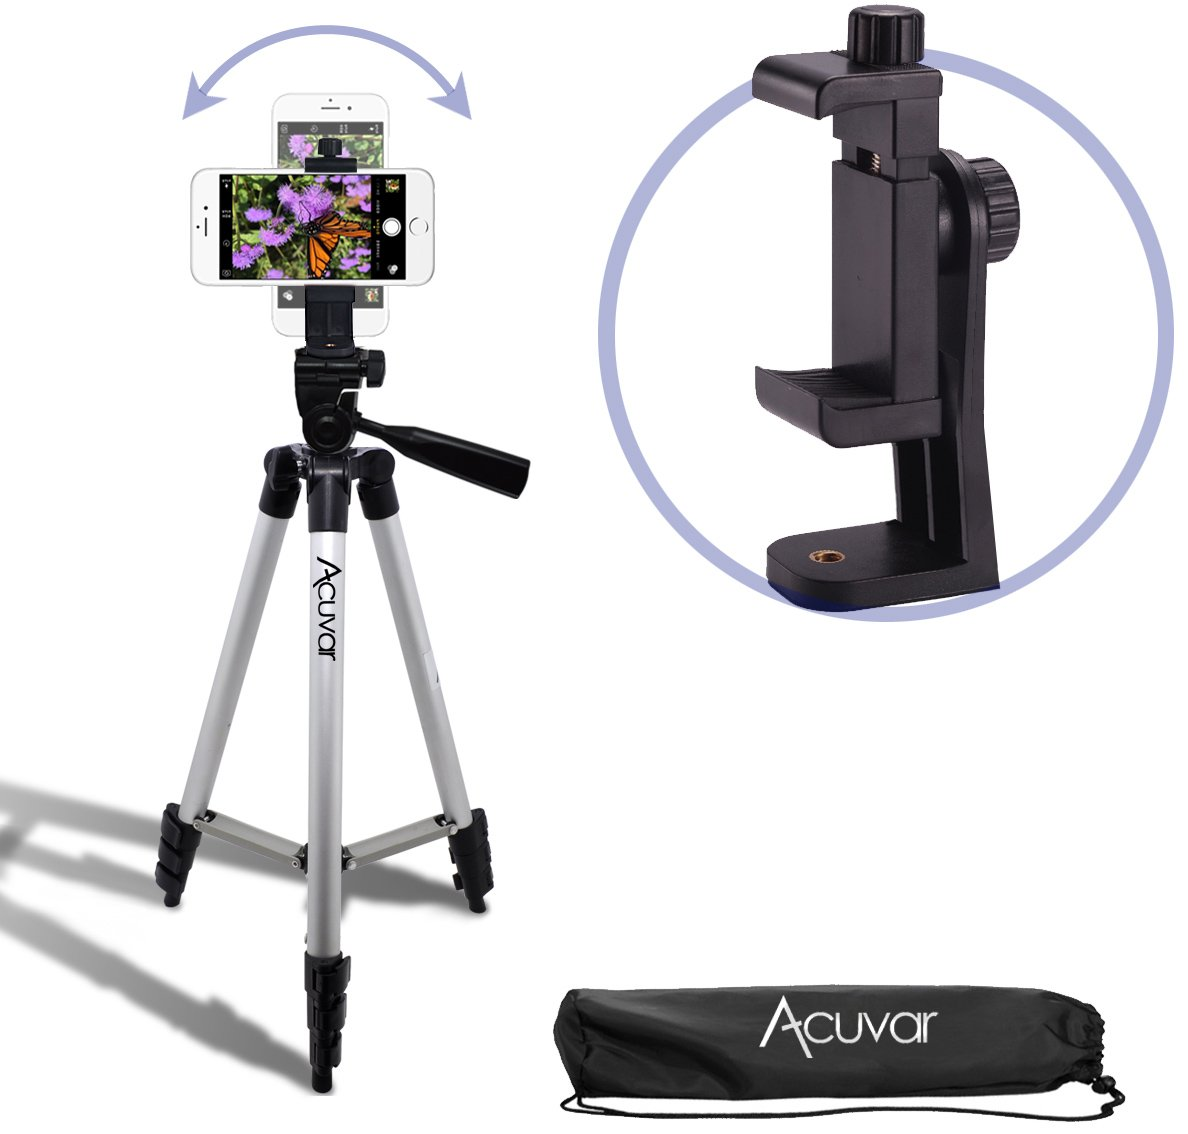 Acuvar 50'' Smartphone/Camera Tripod with Rotating Mount. Fits iPhone X, 8, 8+, 7, 7 Plus, 6, 6 Plus, 5s Samsung Galaxy, Android, etc.